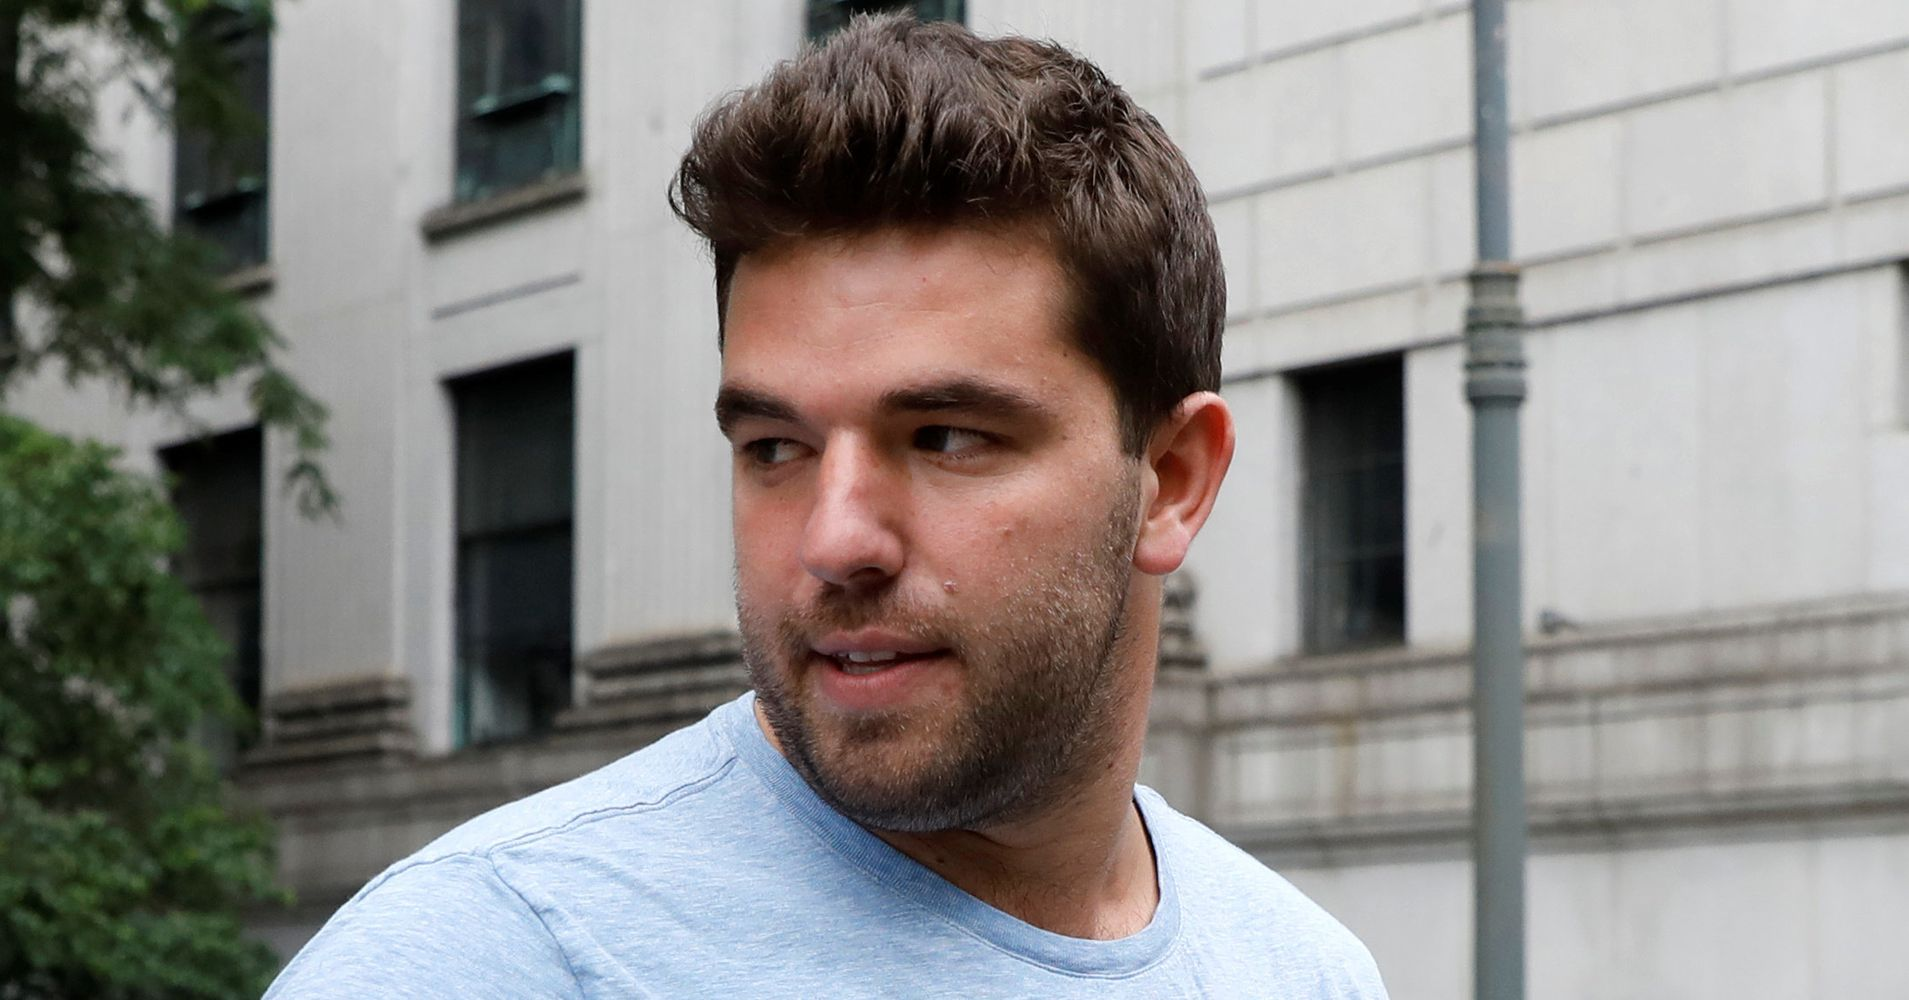 Fyre Festival Founder Faces Prison After Pleading Guilty To Wire ...